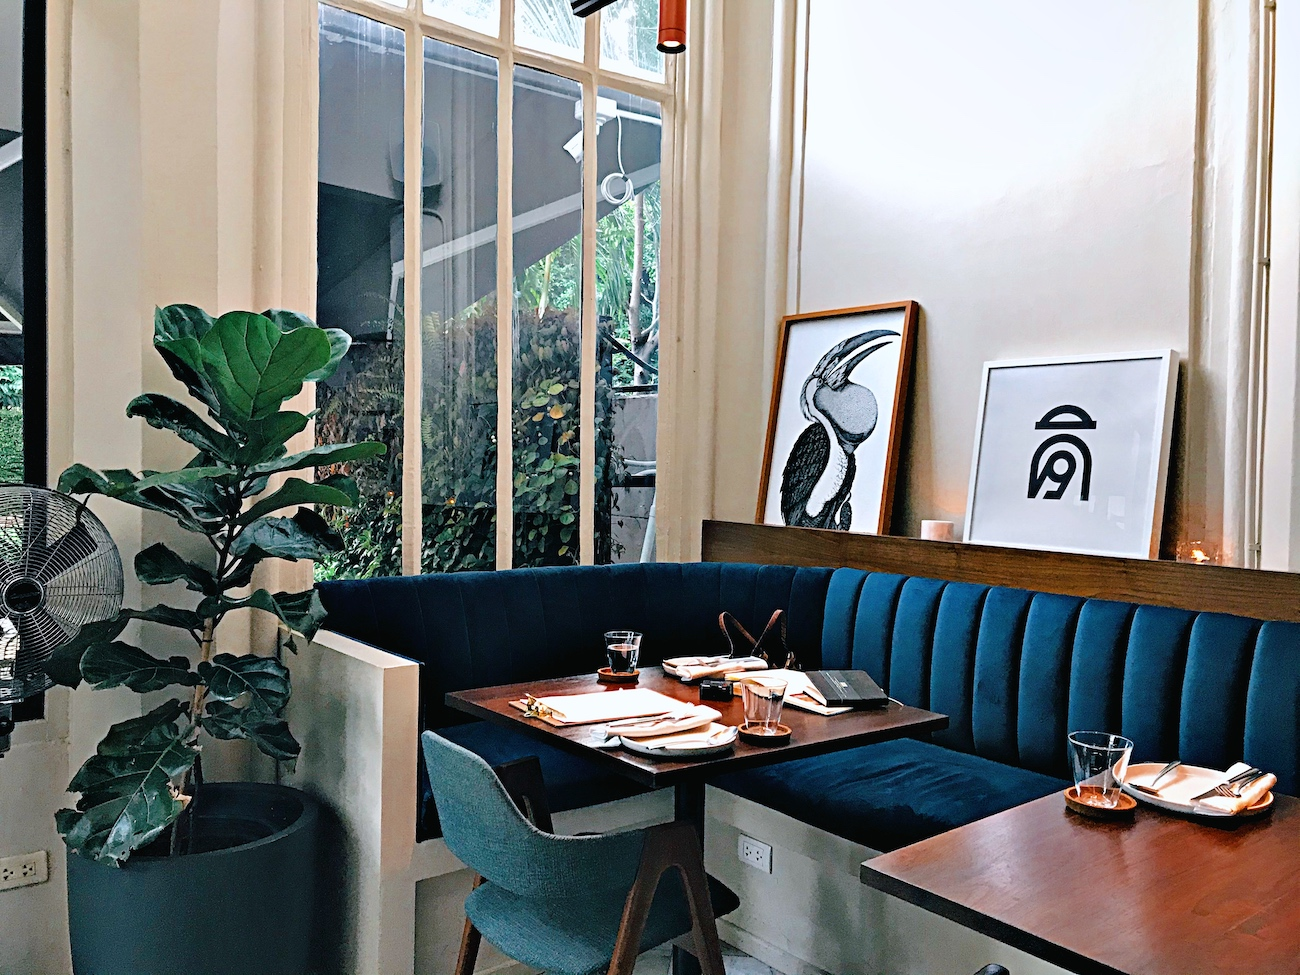 Must-tries: OLTA is where bistronomy and refined British fare meet